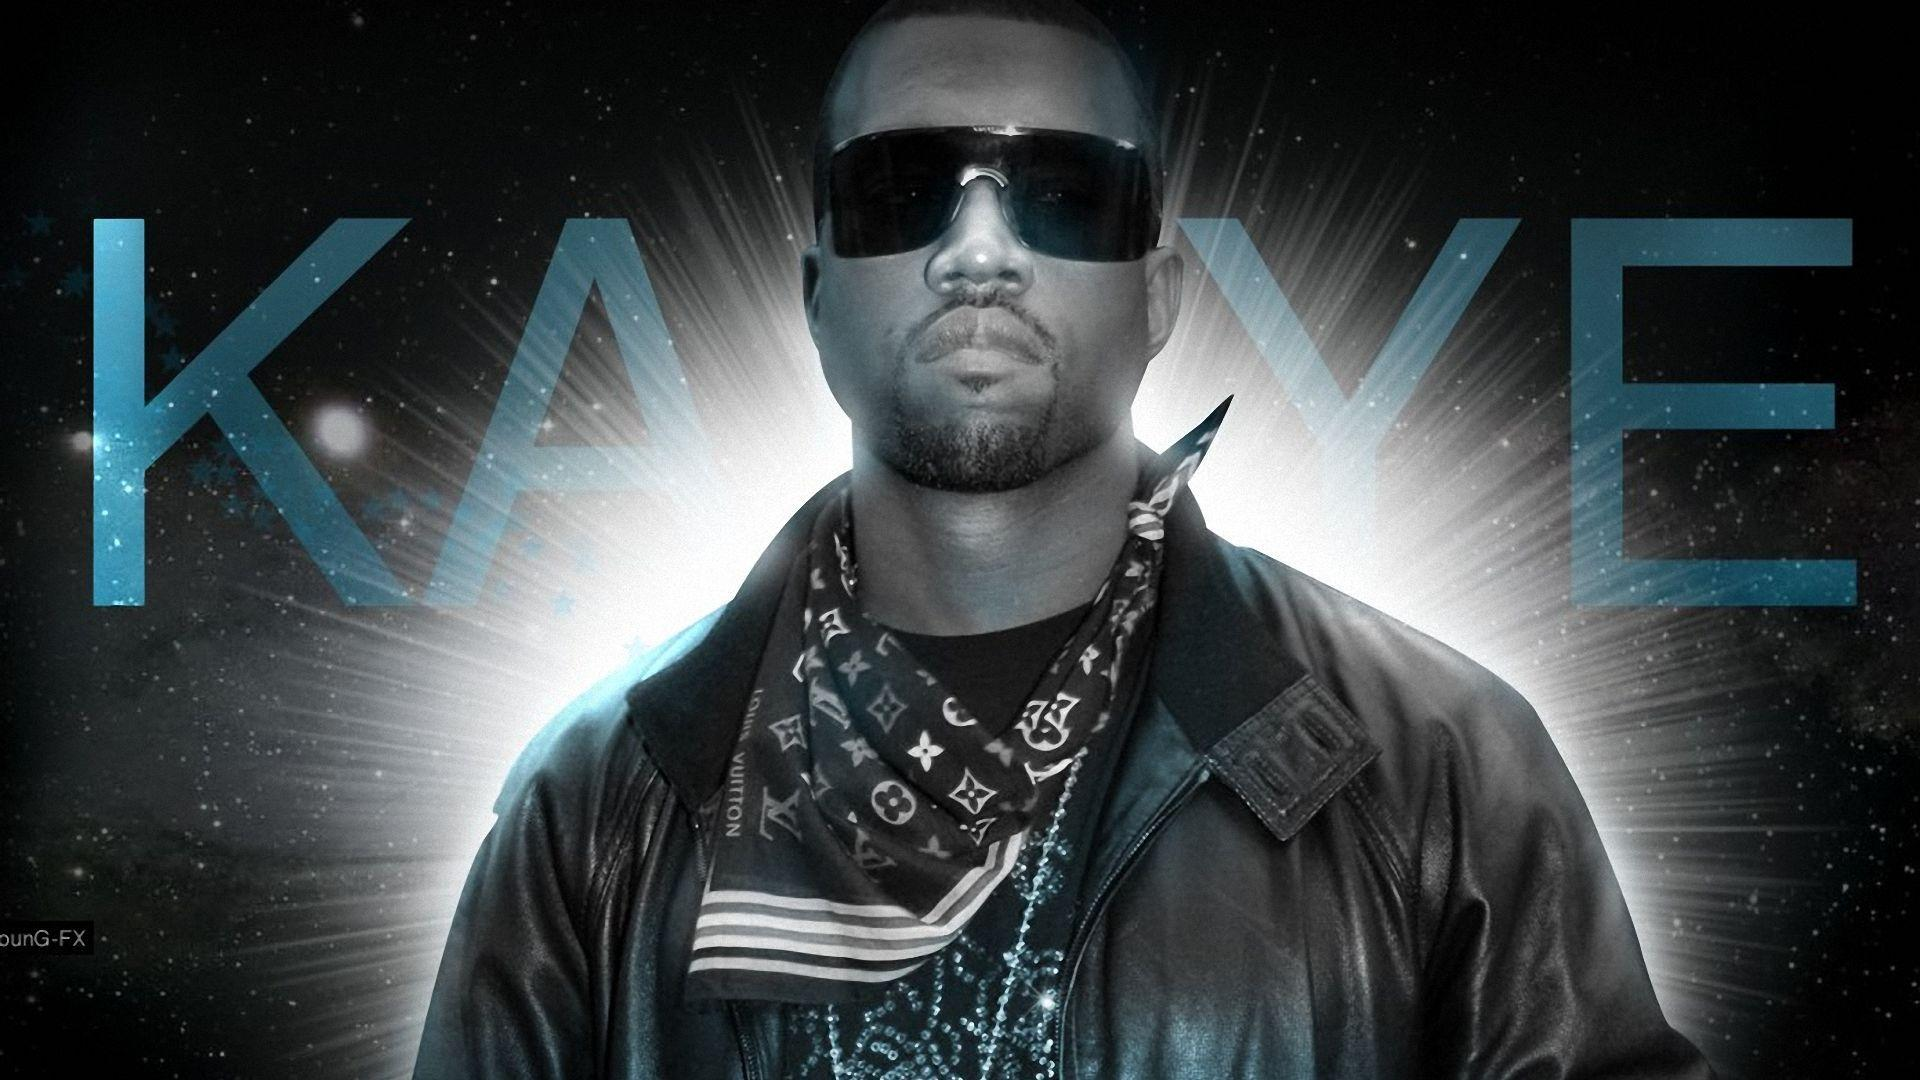 Kanye West Wallpapers HD | HD Wallpapers, Backgrounds, Images, Art ...